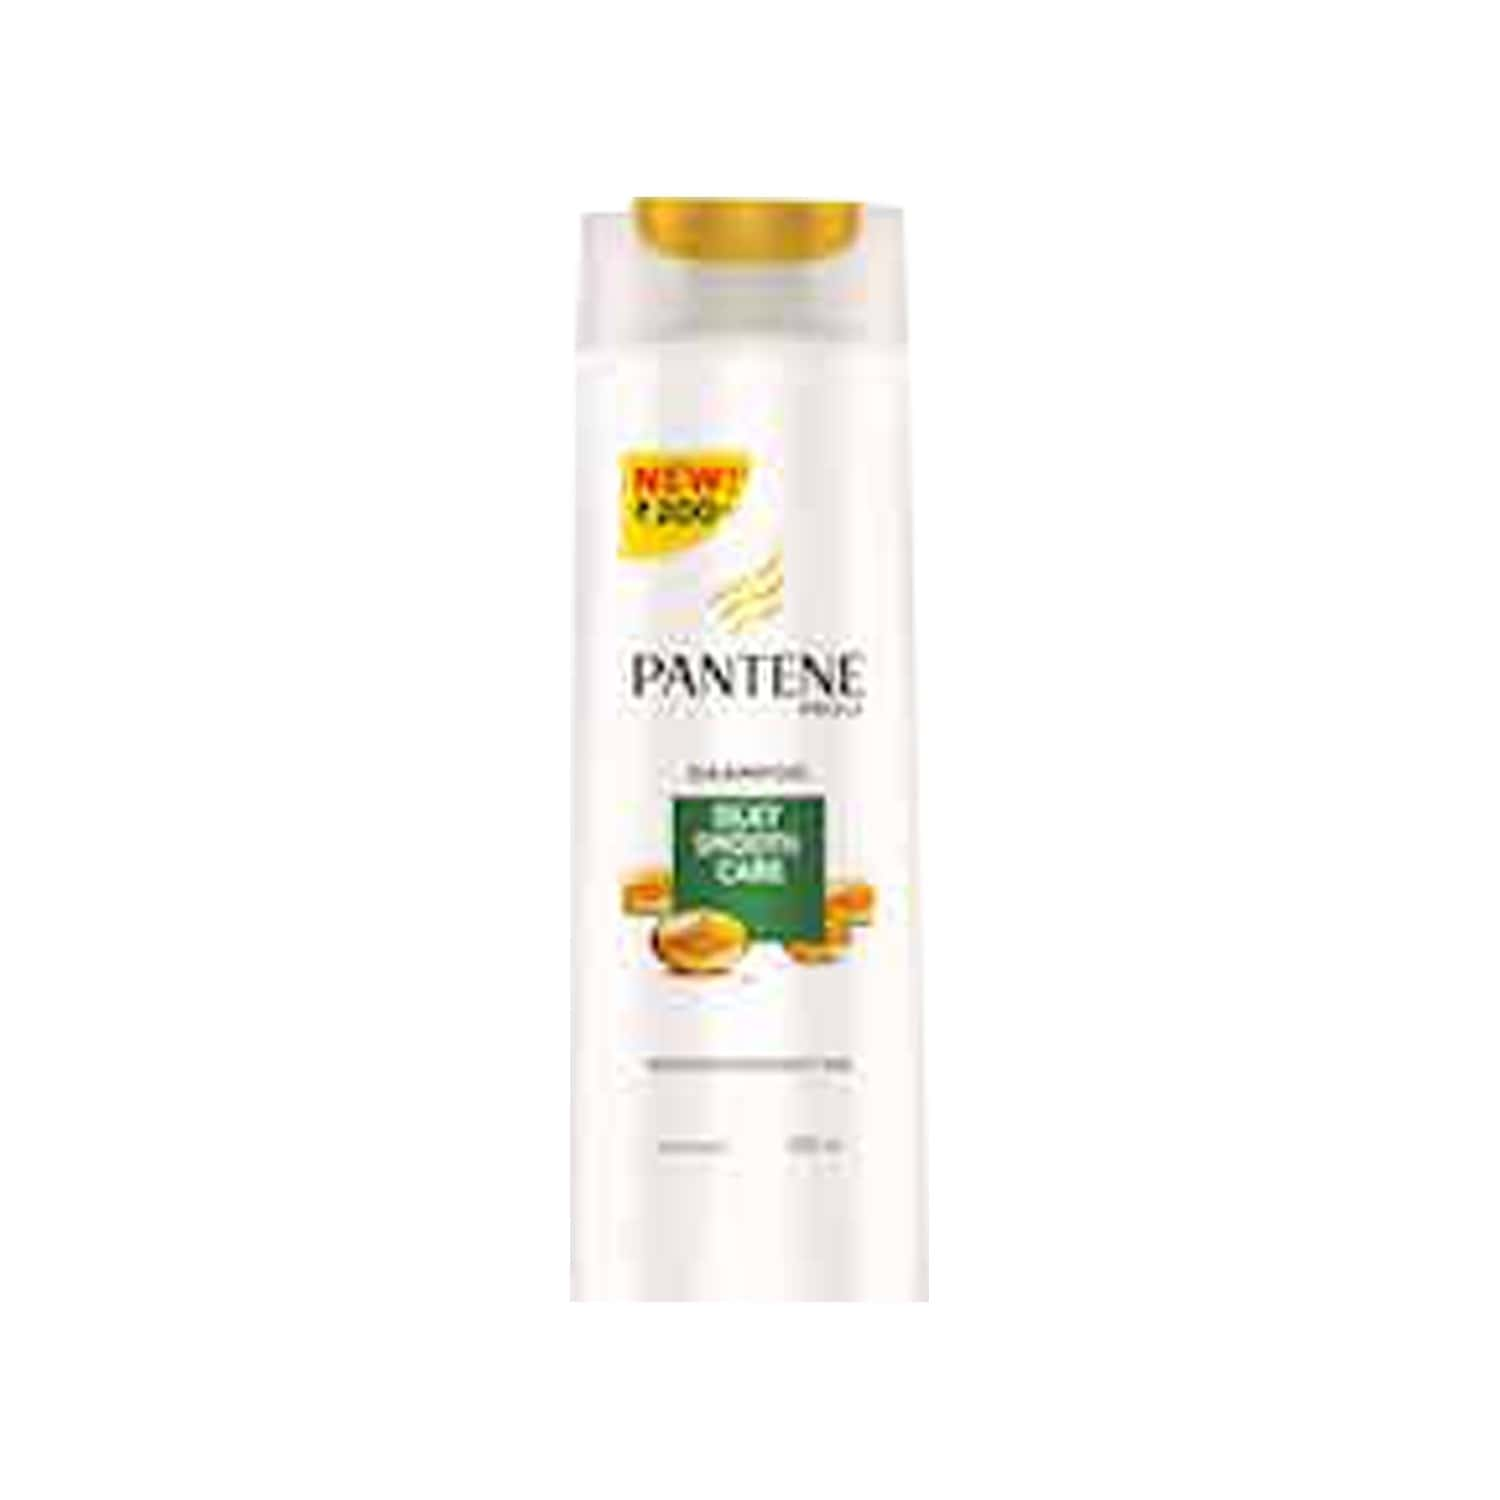 Pantene Shampoo Silky Smooth Care 340 Ml